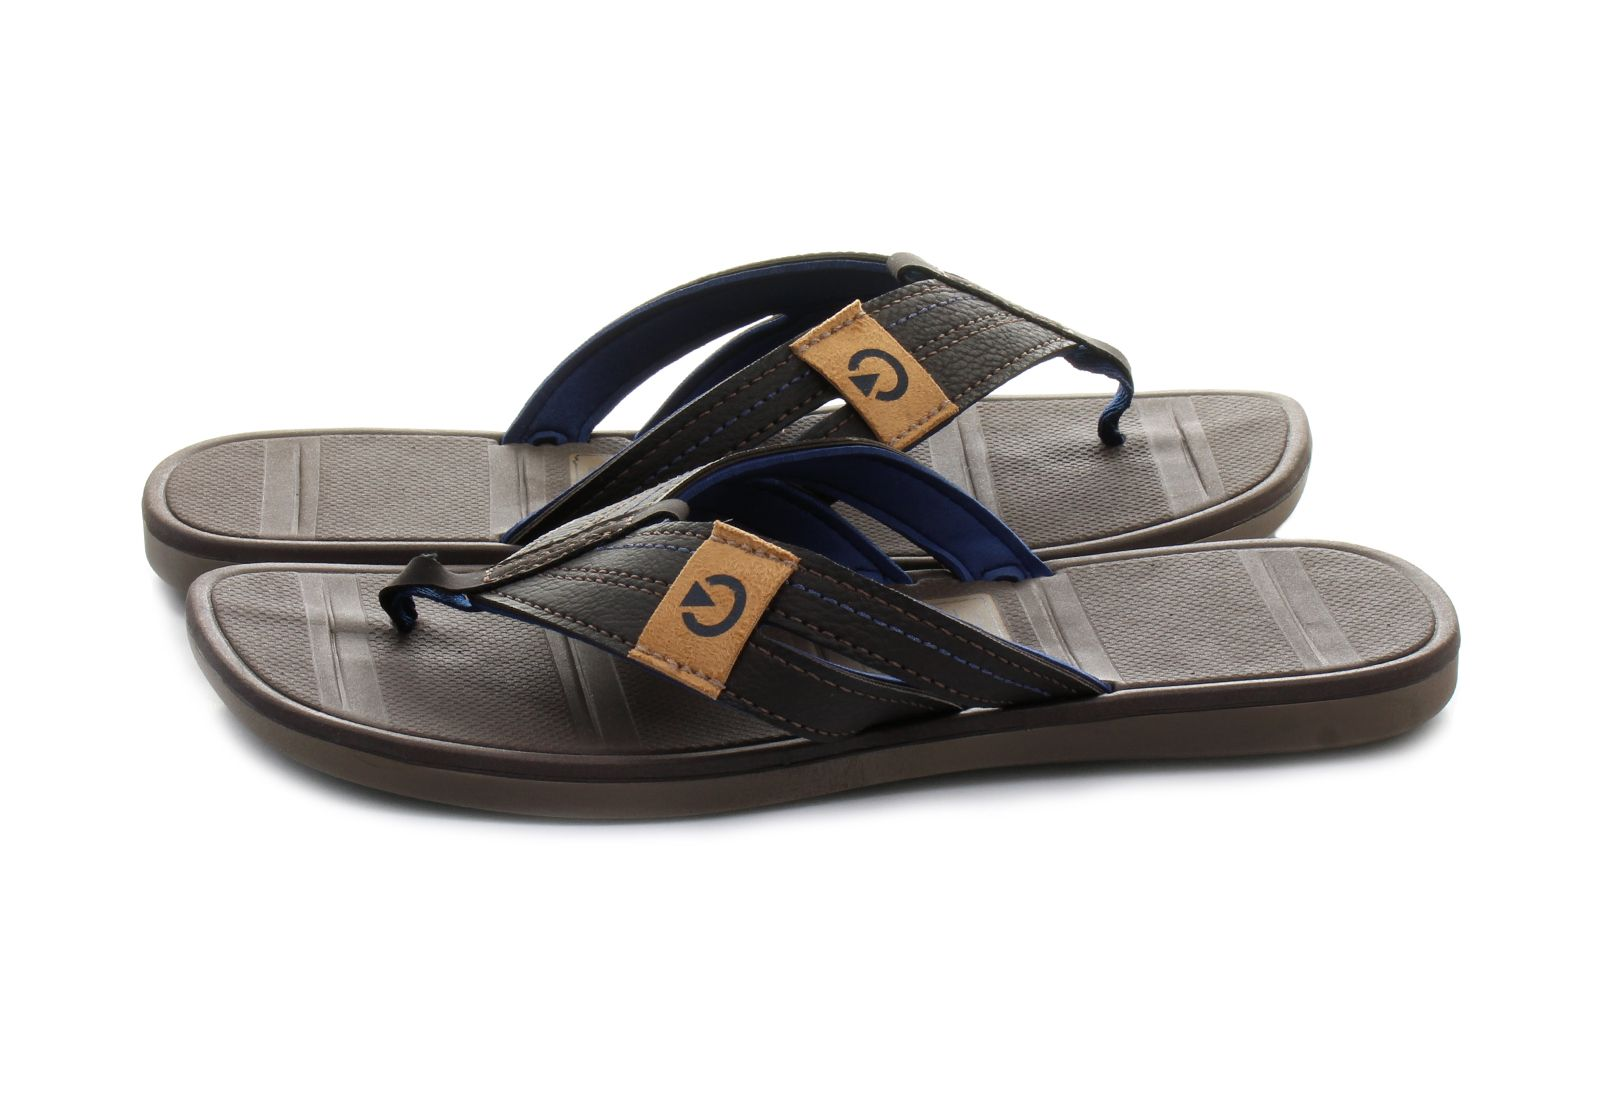 086178597b85d Cartago Slippers - Mali Thong - 11040-21181 - Online shop for ...